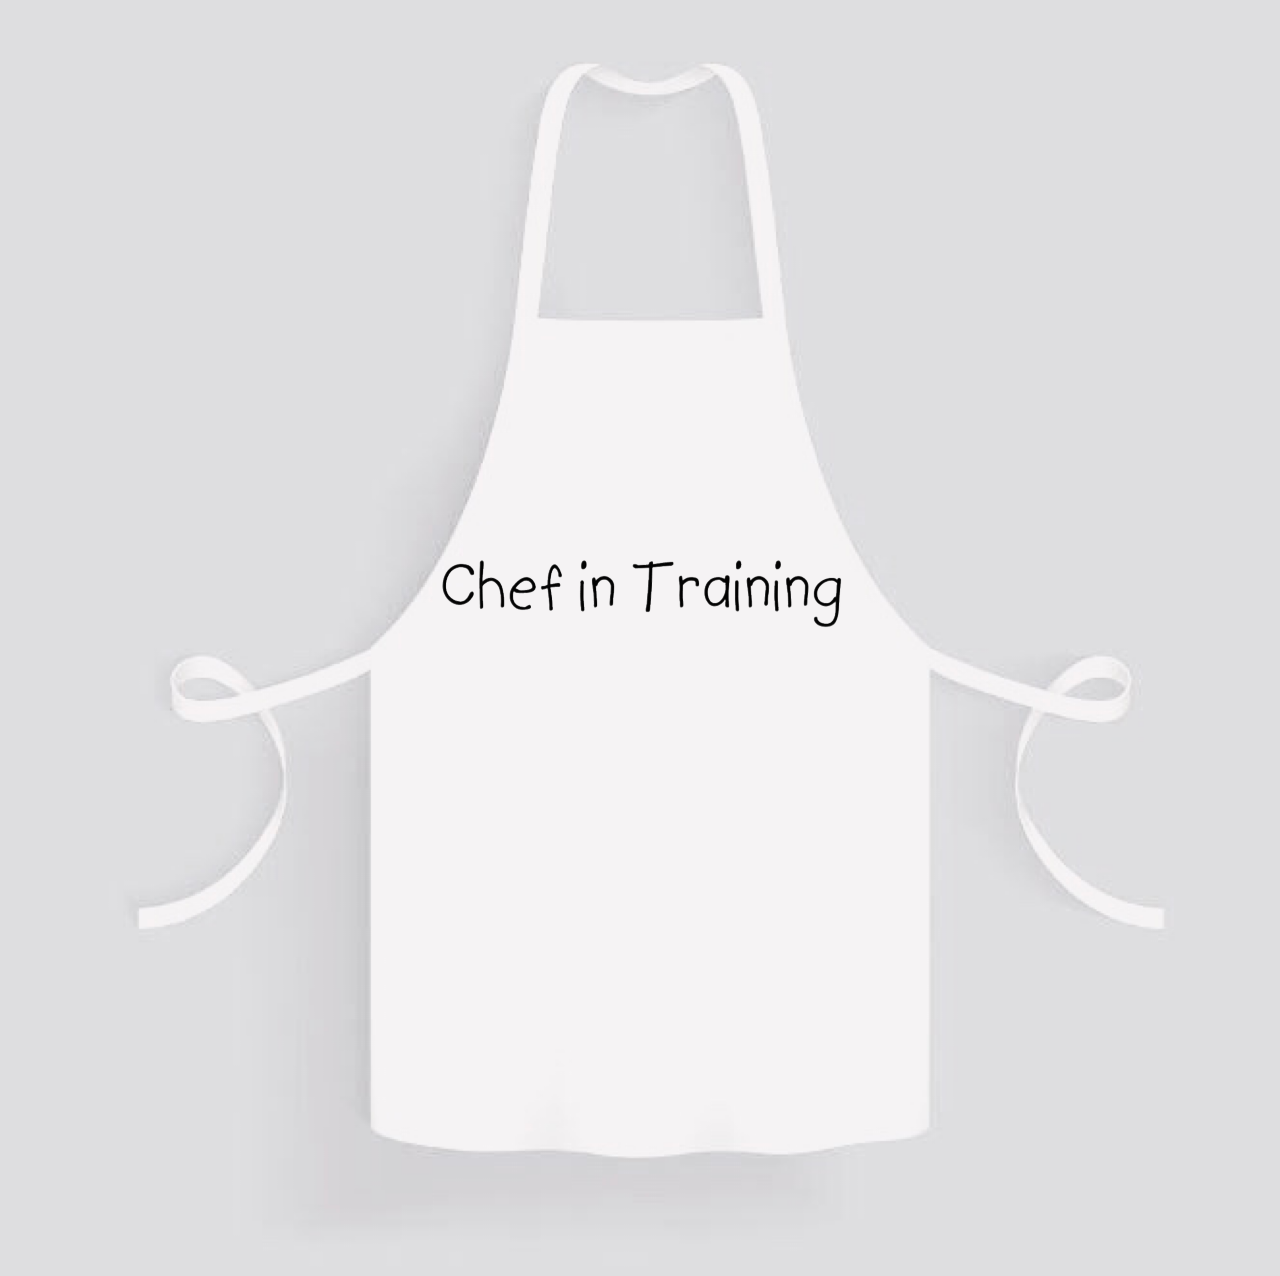 Apron: Chef in Training